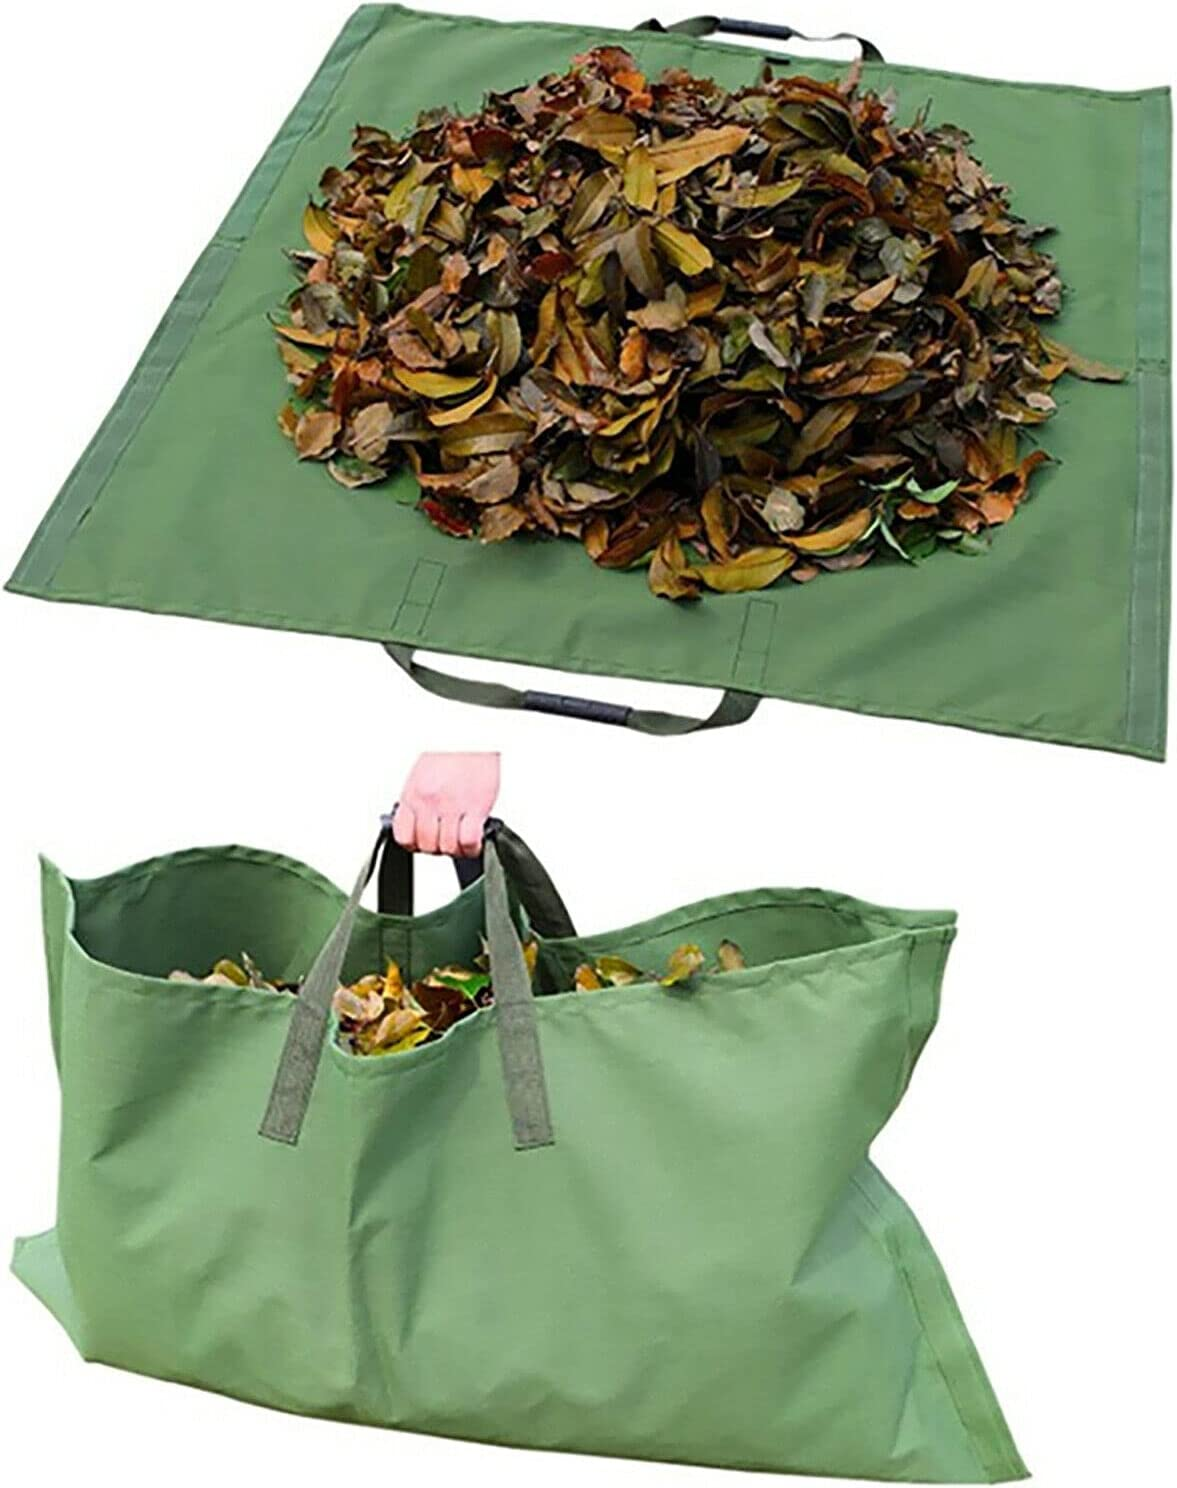 Leaf Bag for Collecting OFFicial shop Leaves Pool Lawn Foldable Denver Mall Garden W